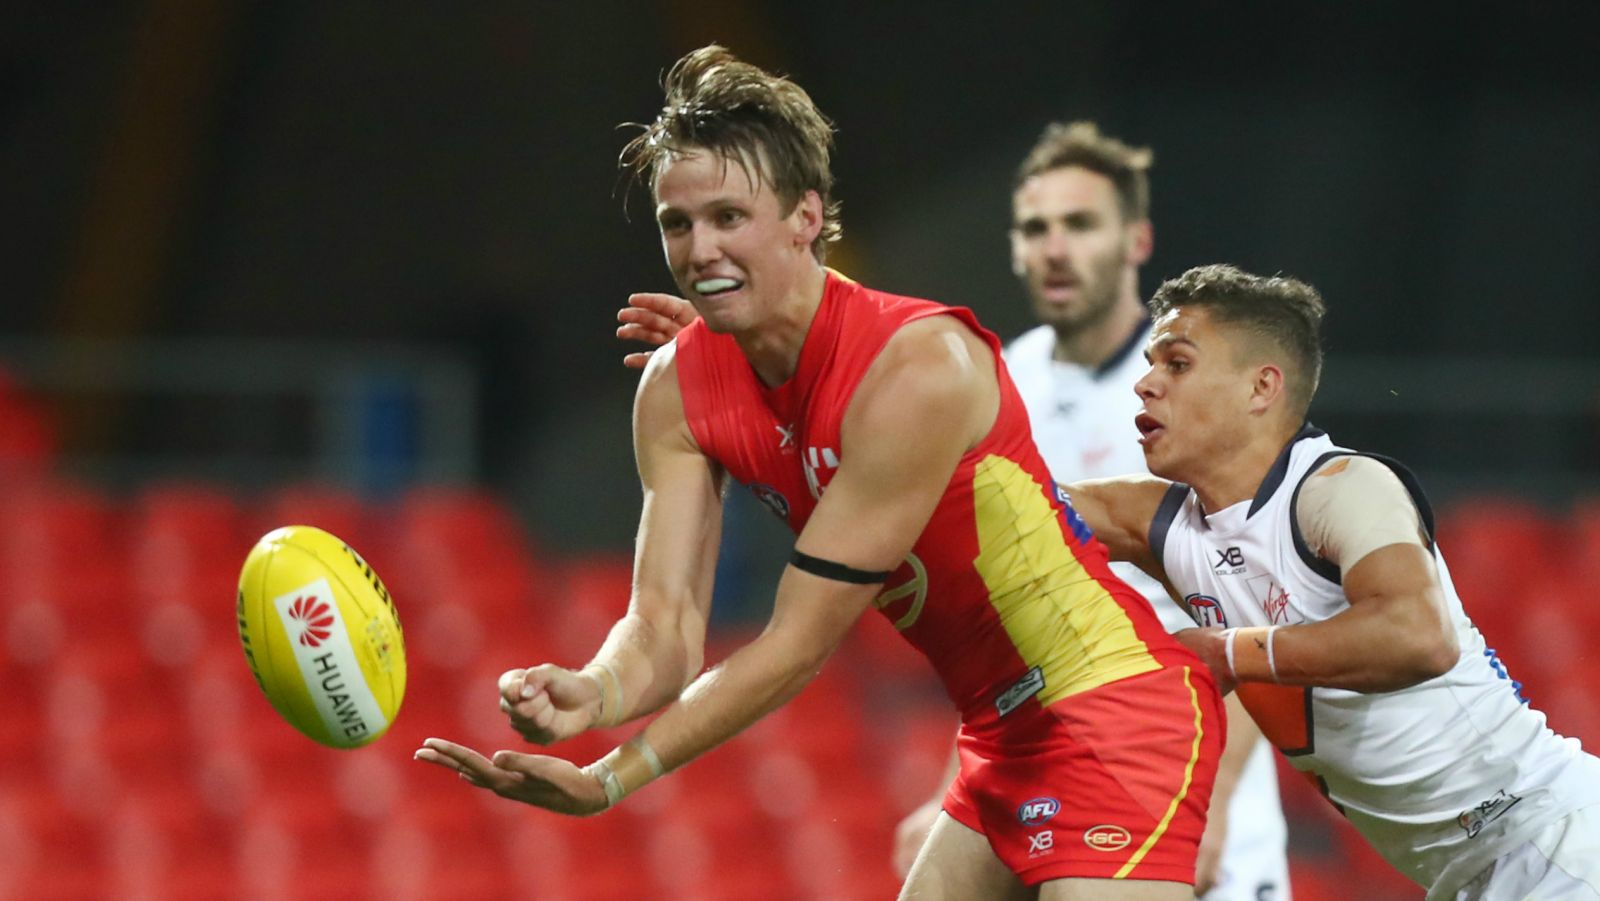 AFL 2021 Daily Fantasy Tips: Round 4 Saturday